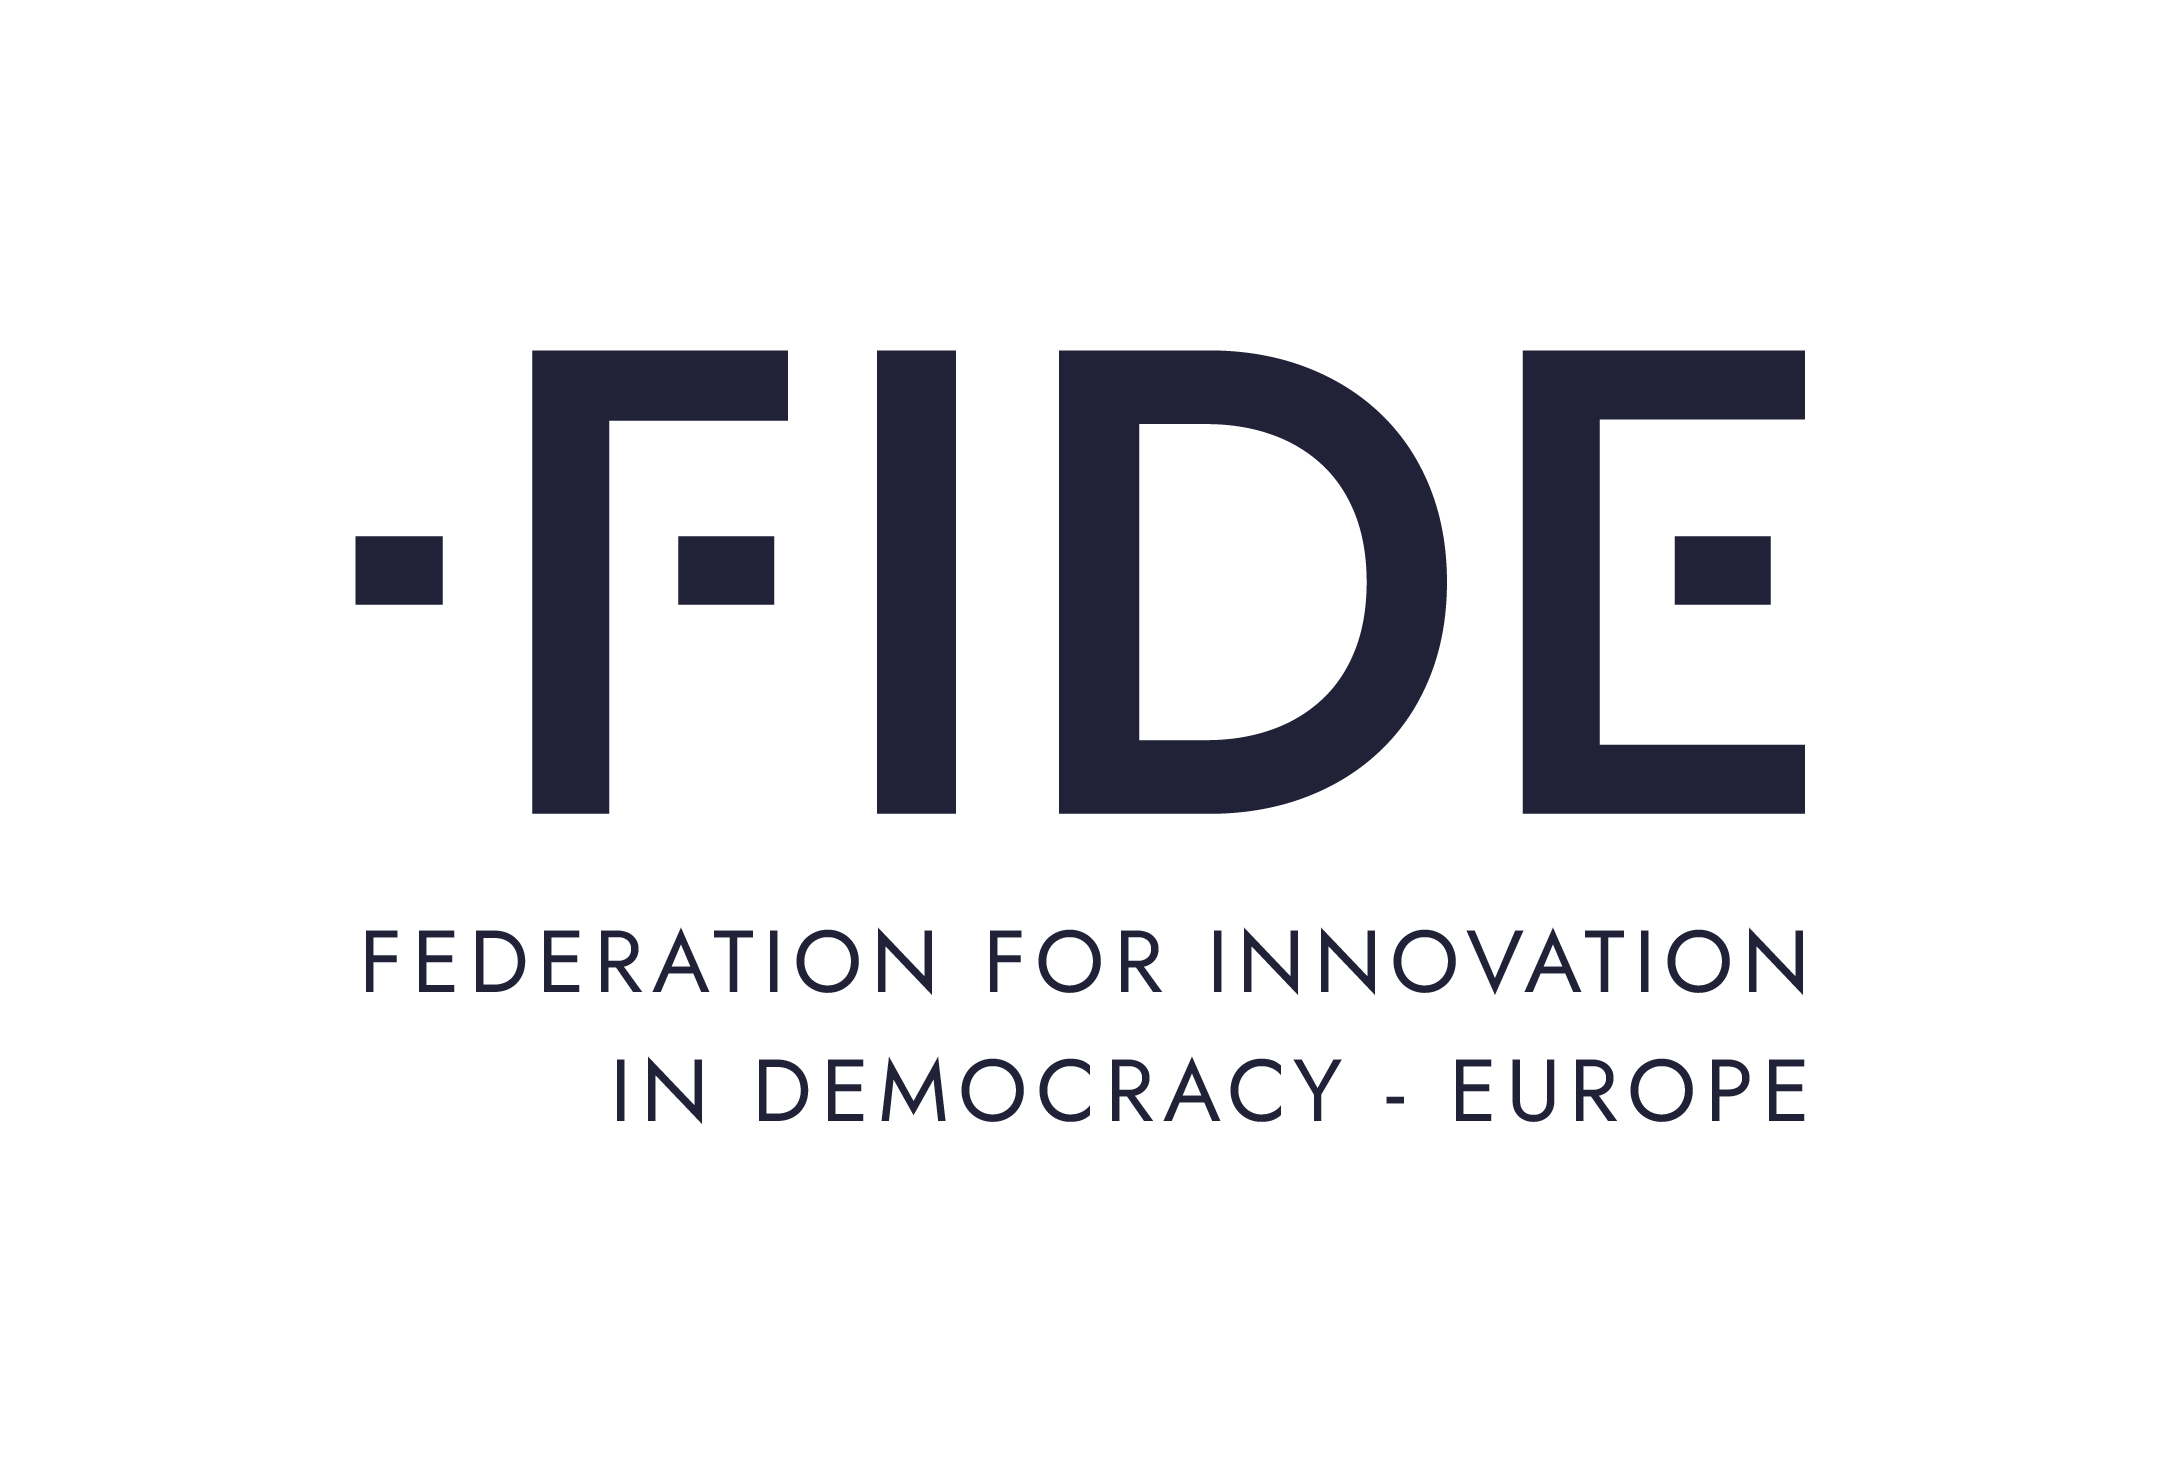 Federation for innovation in democracy - Europe logo